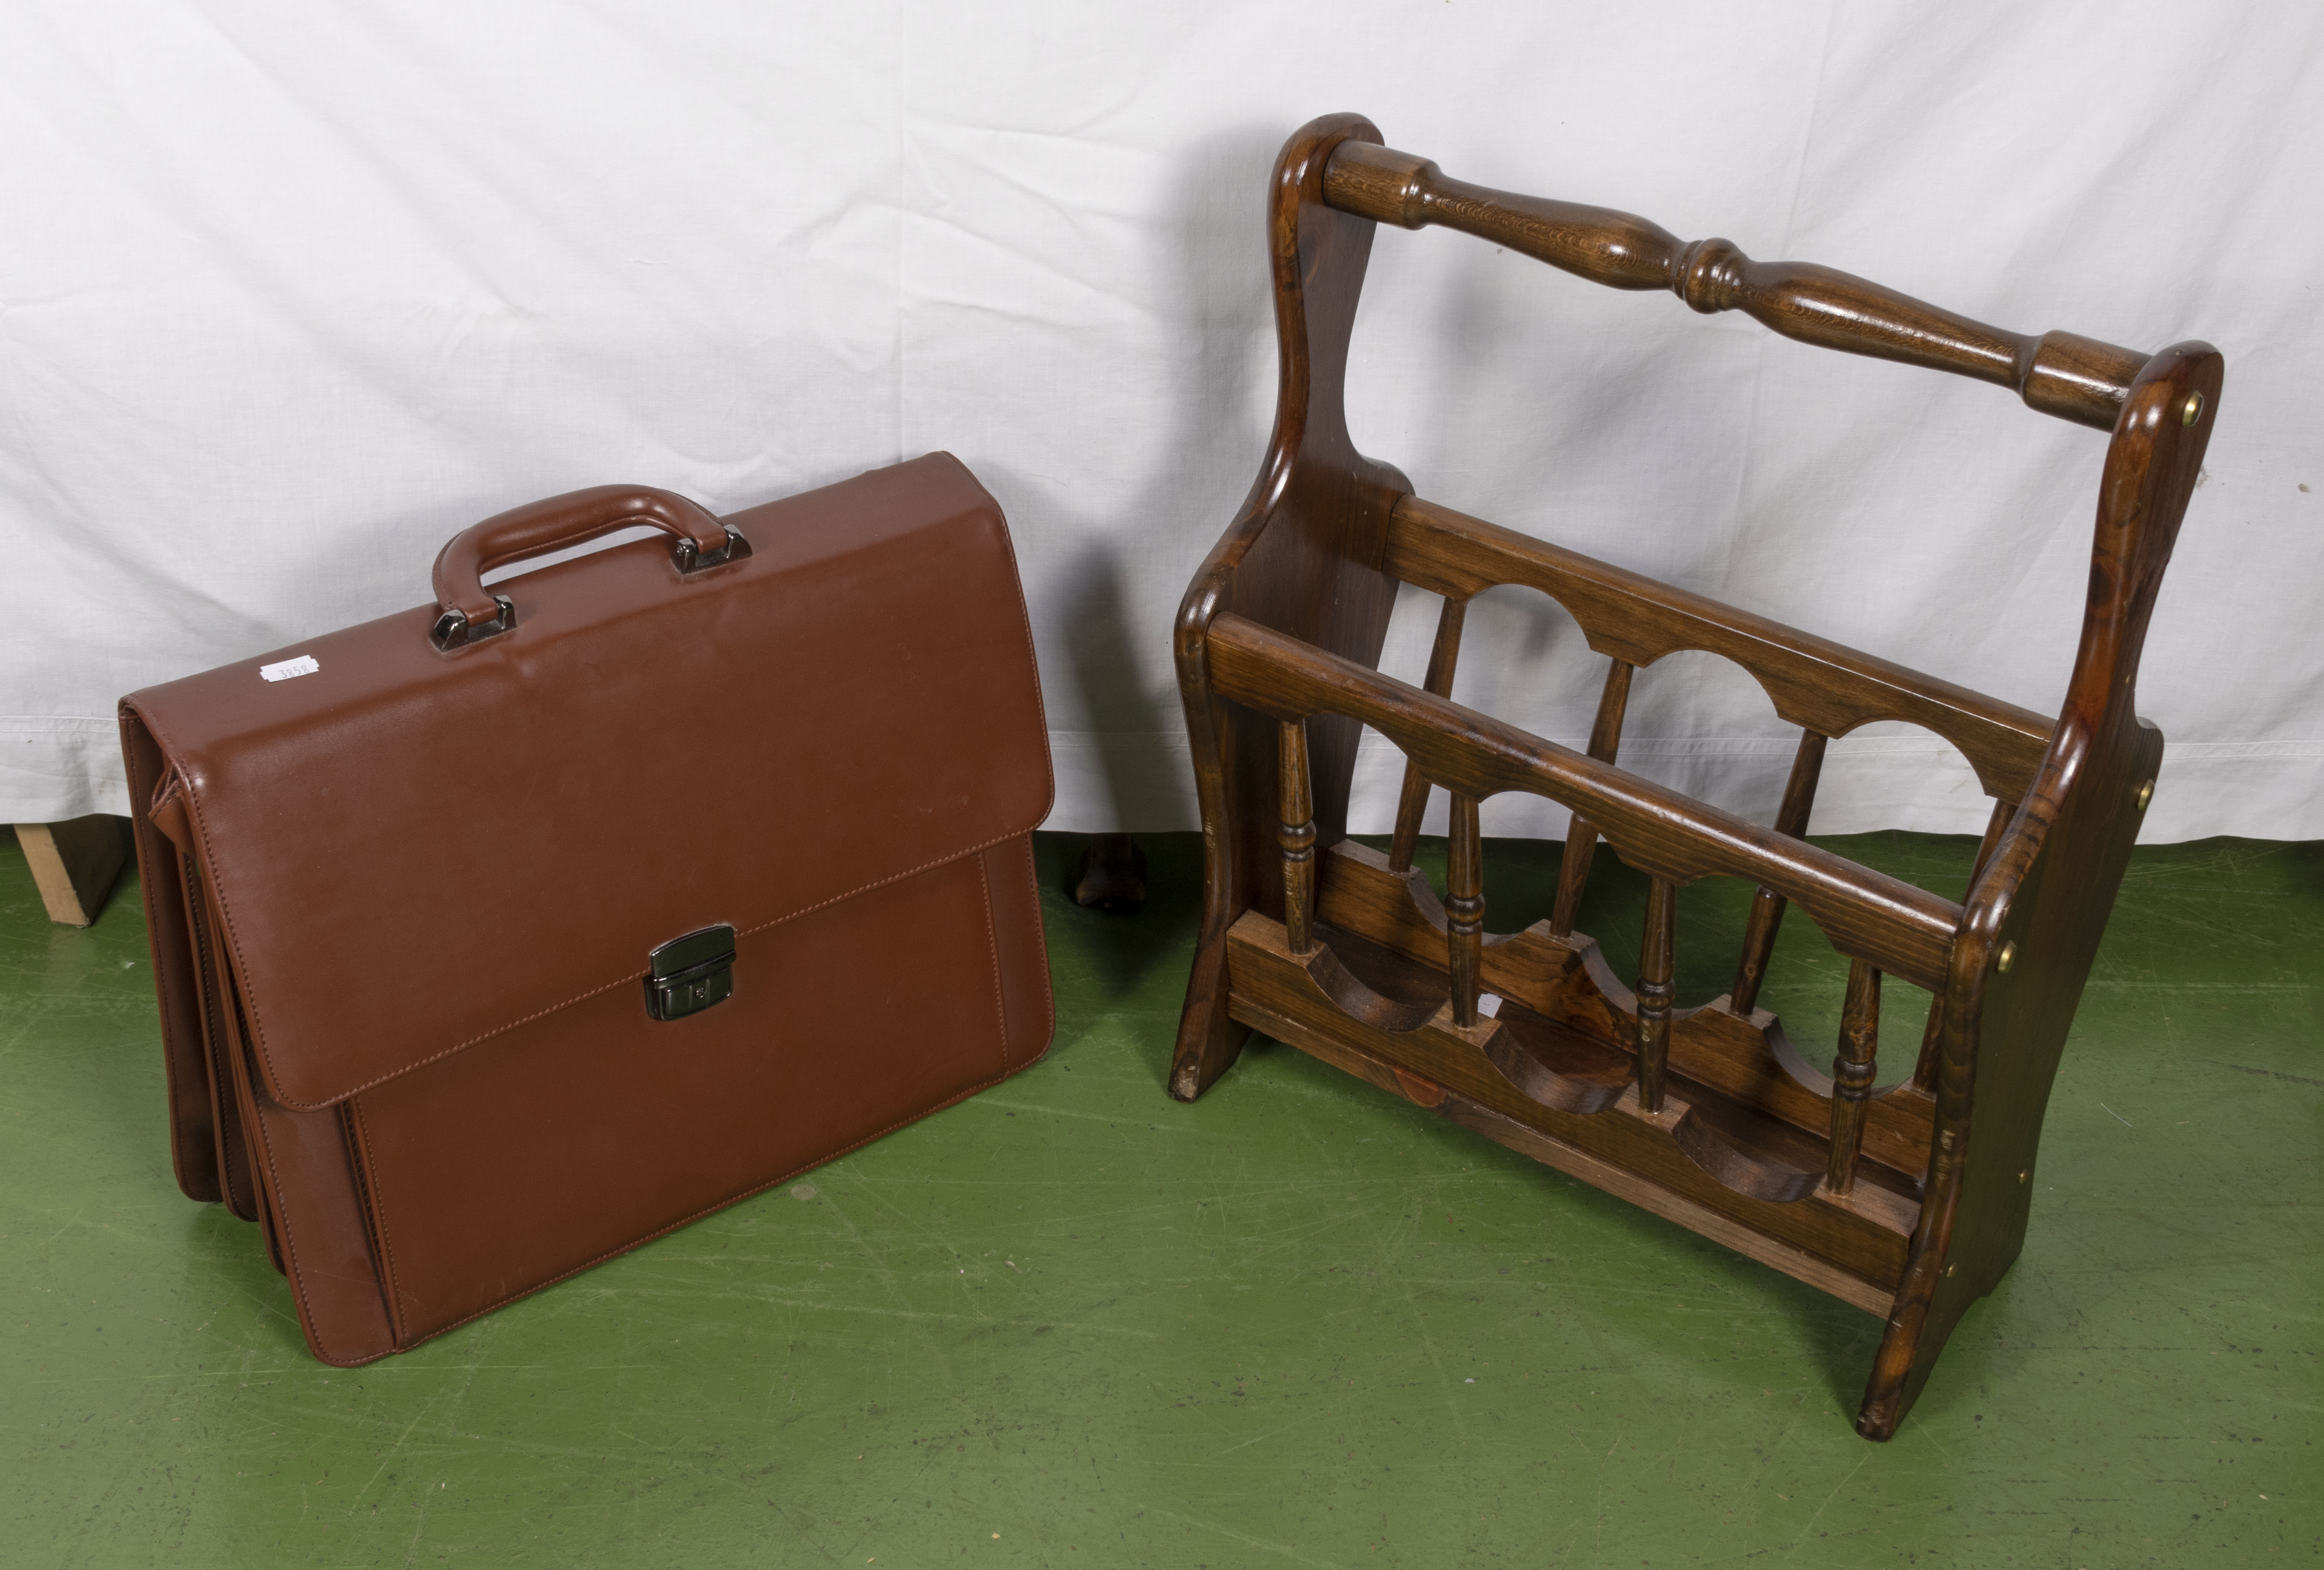 Lot 20 - A magazine rack and a briefcase